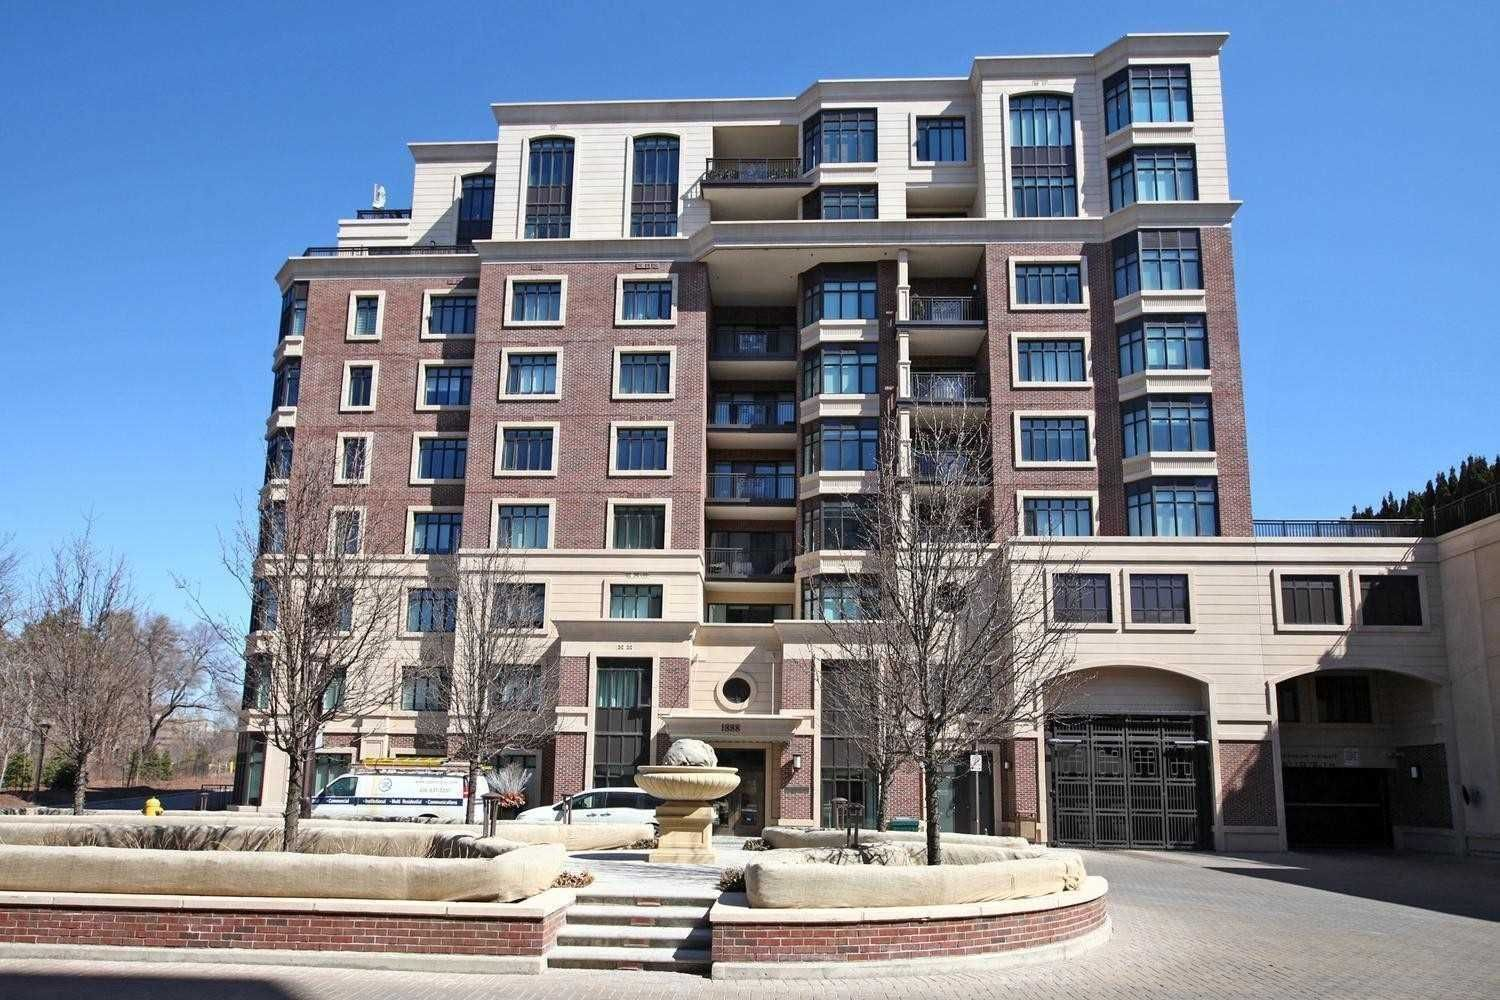 1888 Bayview Ave, unit 602 for rent in Toronto - image #1